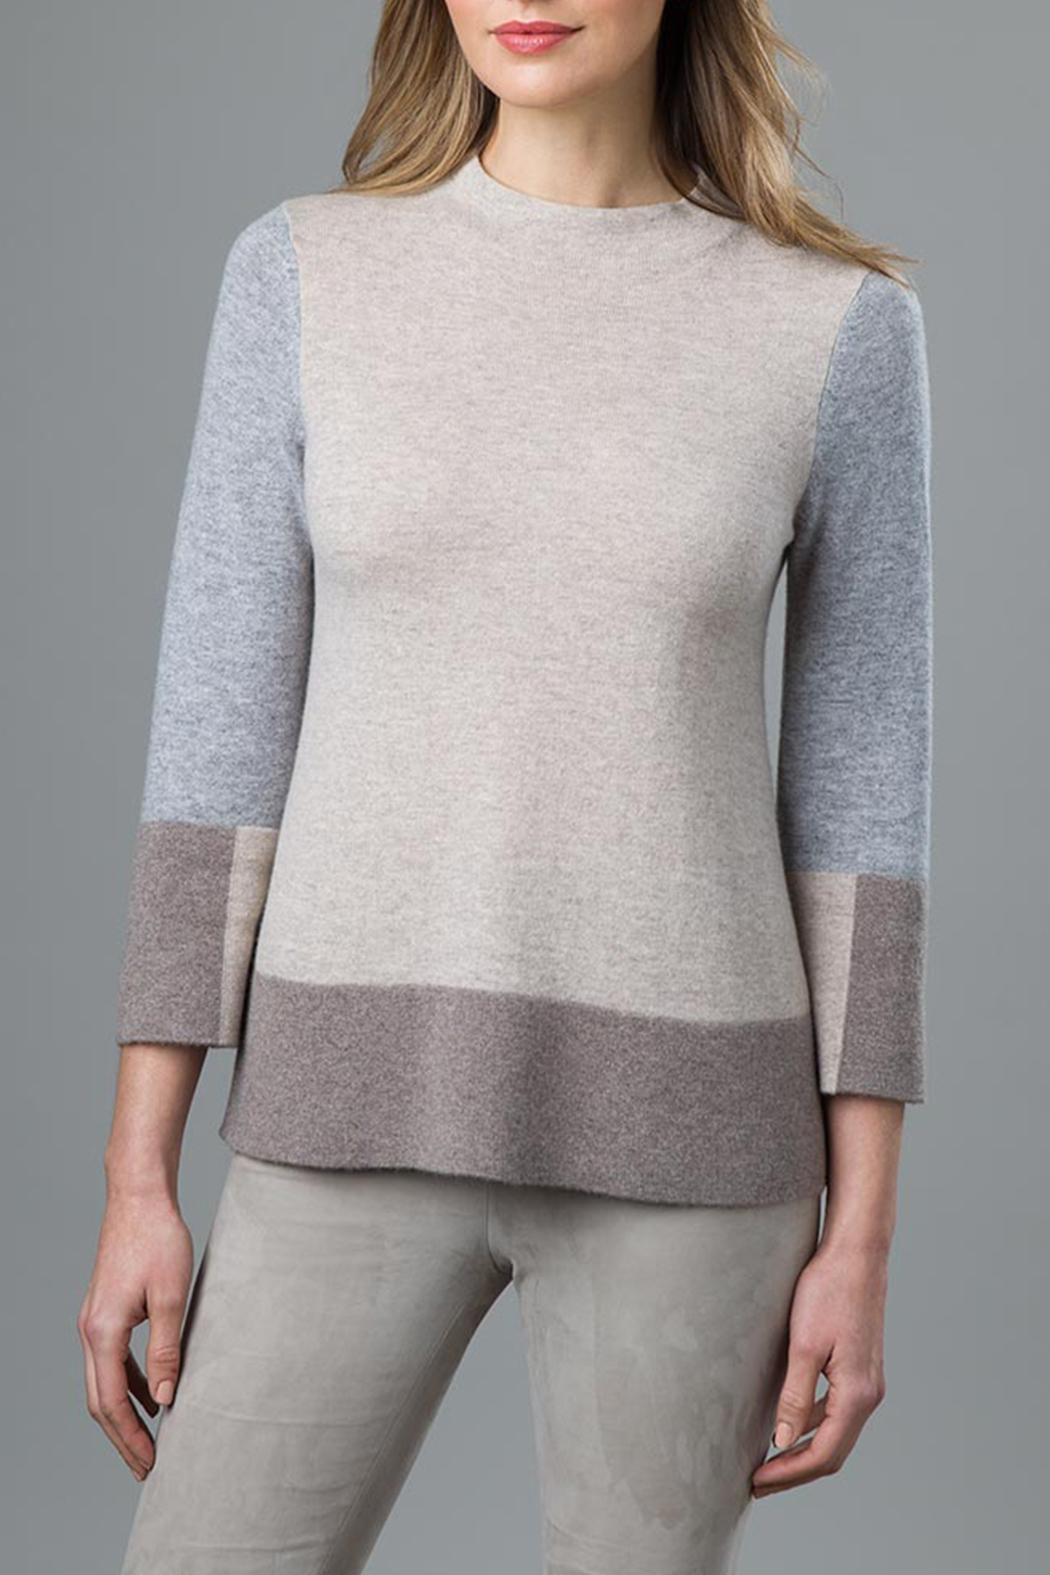 f0f281c9609 Kinross Cashmere Cashmere Colorblock Sweater from Seattle by Jack ...